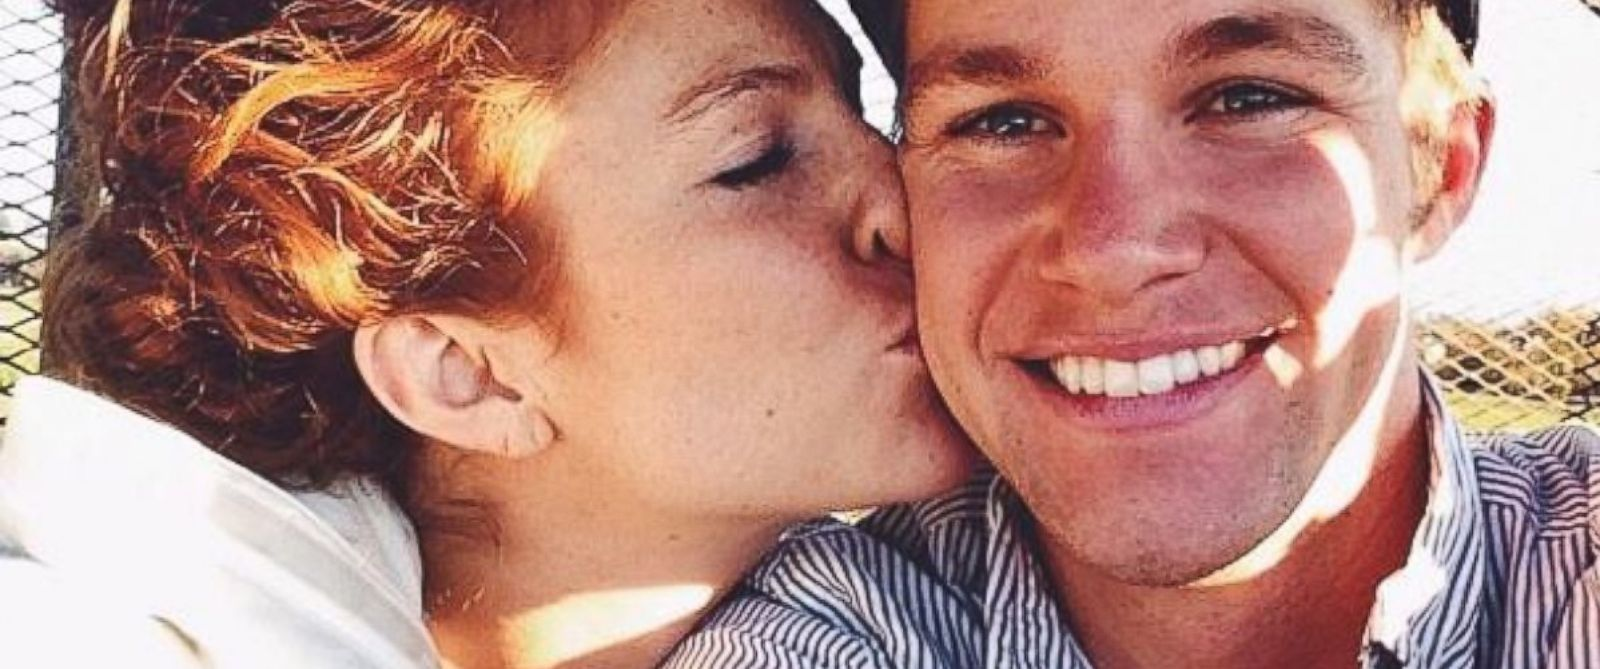 PHOTO: Jeremy Roloff and Audrey Botti are seen in this undated photo posted to Facebook.